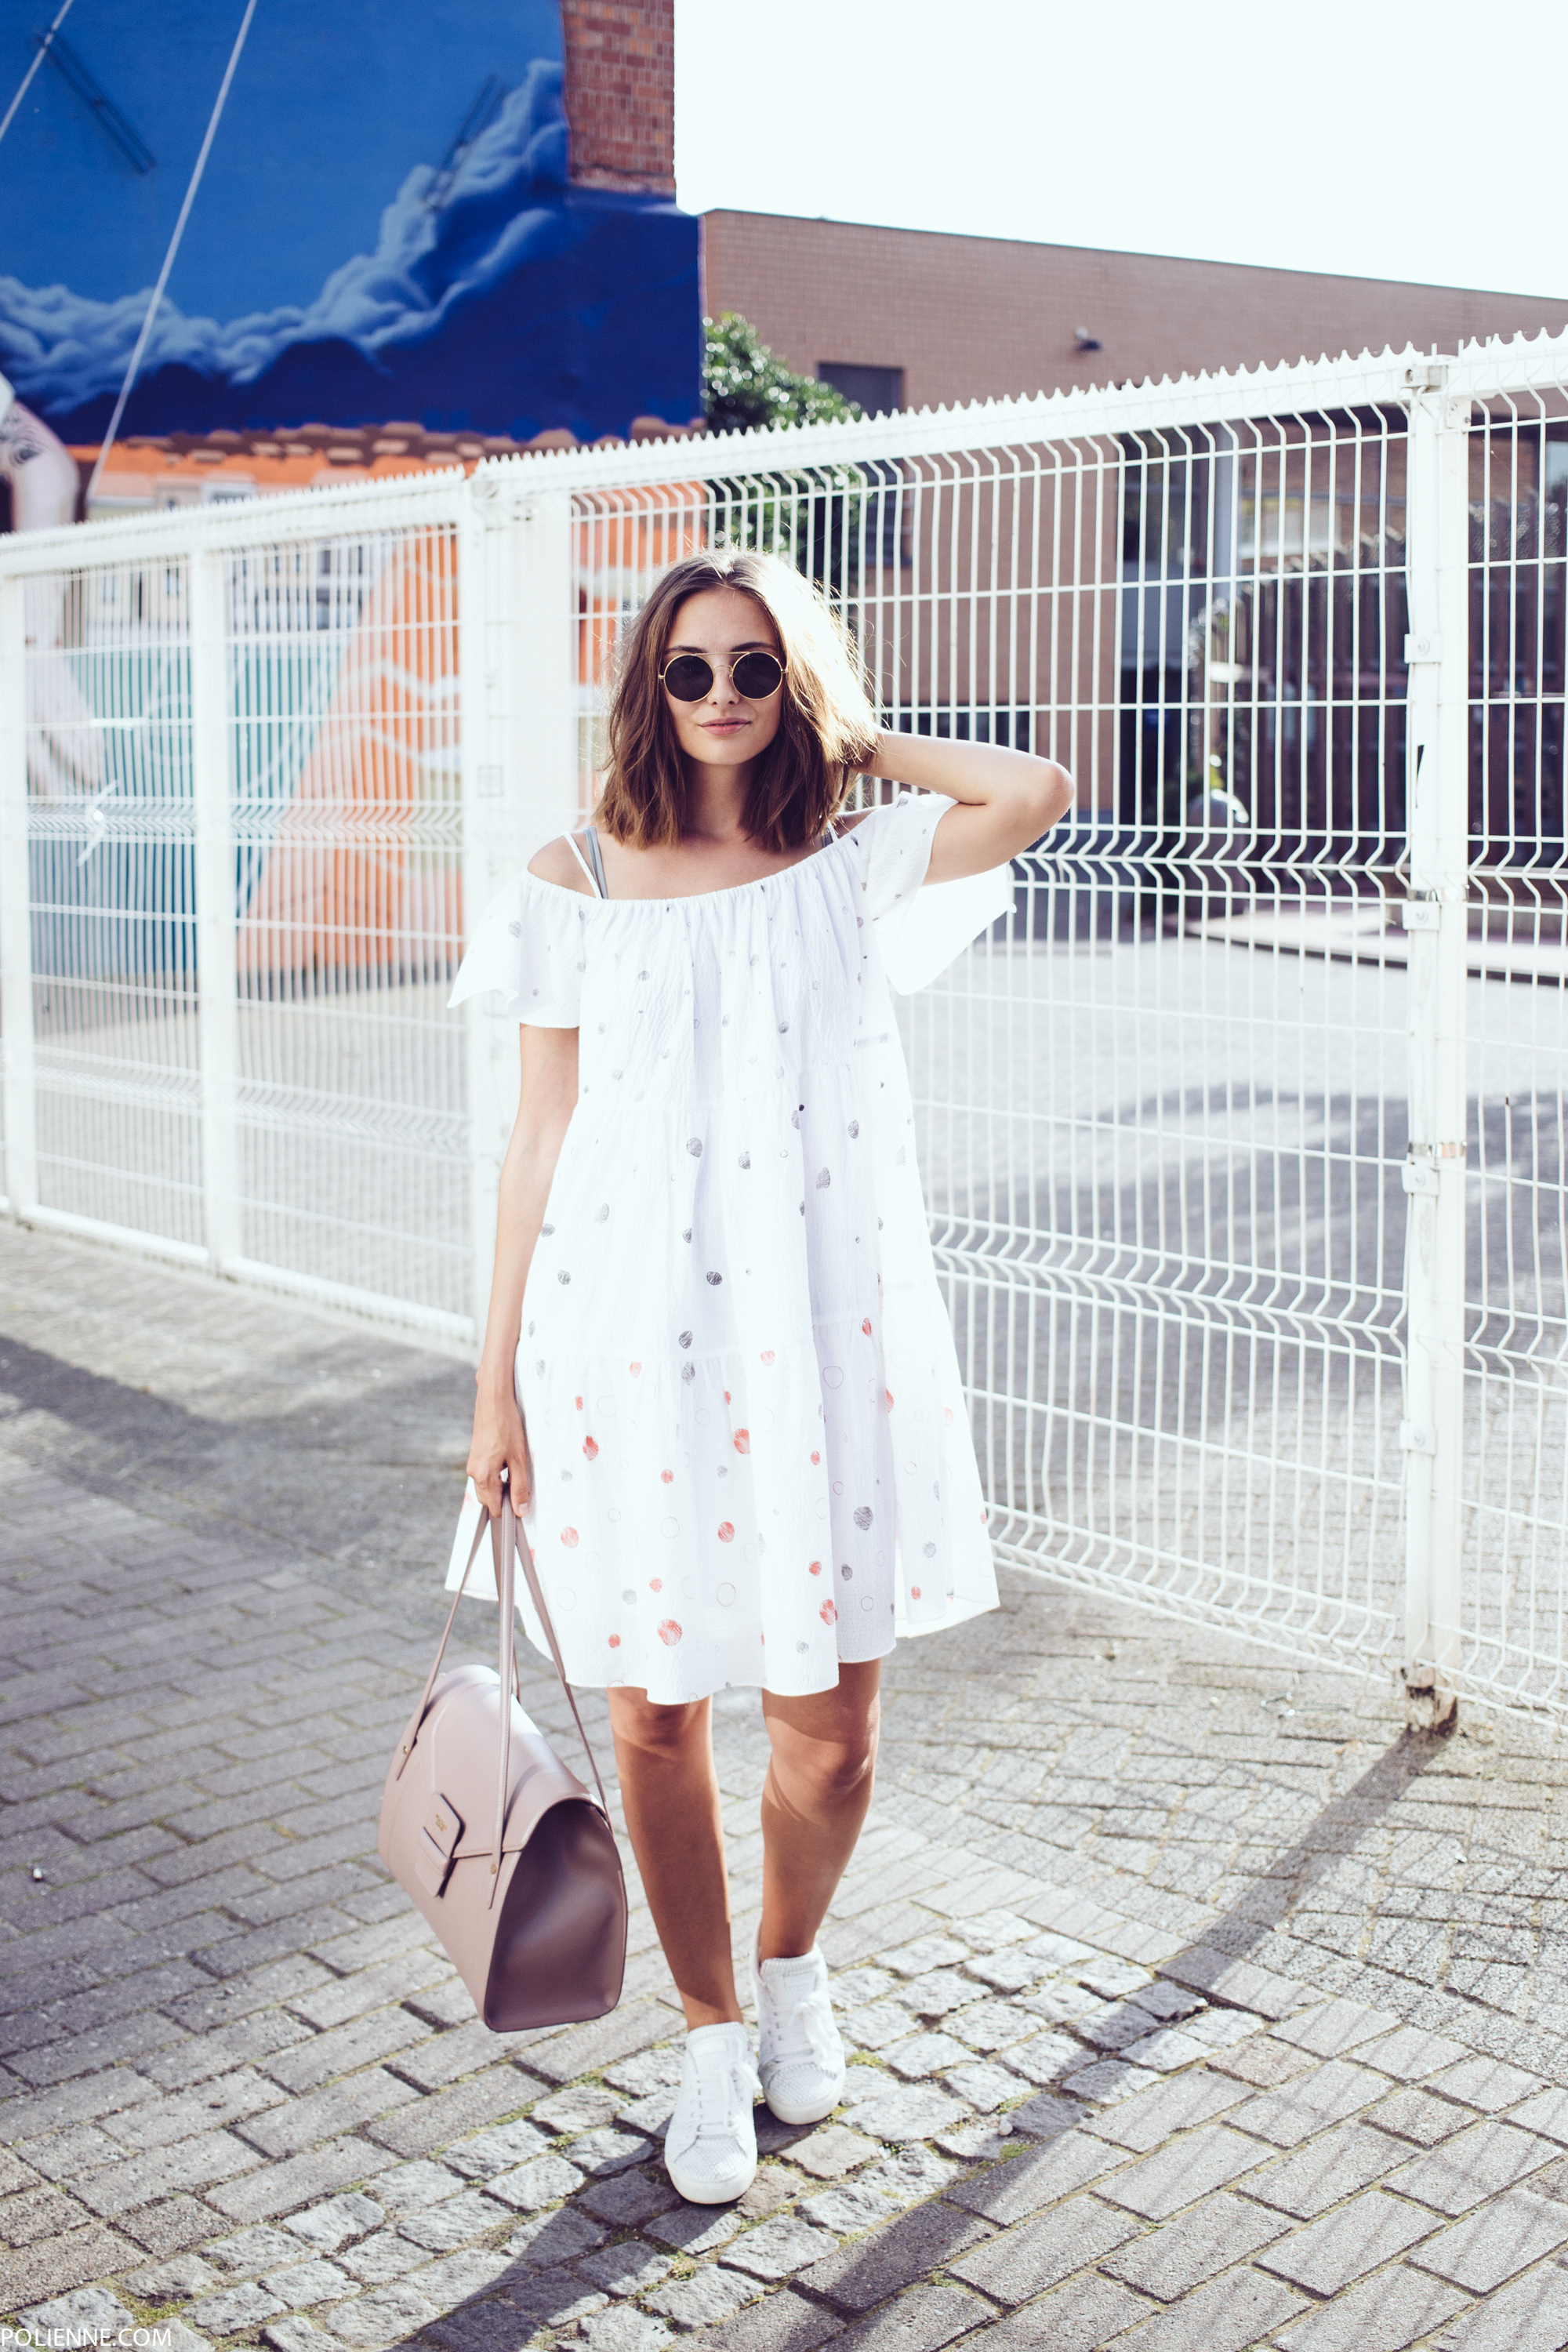 A loose fitting white dress such as this one worn by Rosanna van Billie-Rose is this year's must have off the shoulder piece! Paired with sneakers and a stylish blush pink leather bag, this dress looks cute and elegant. Dress: & Other Stories, Sneakers: Pinko.